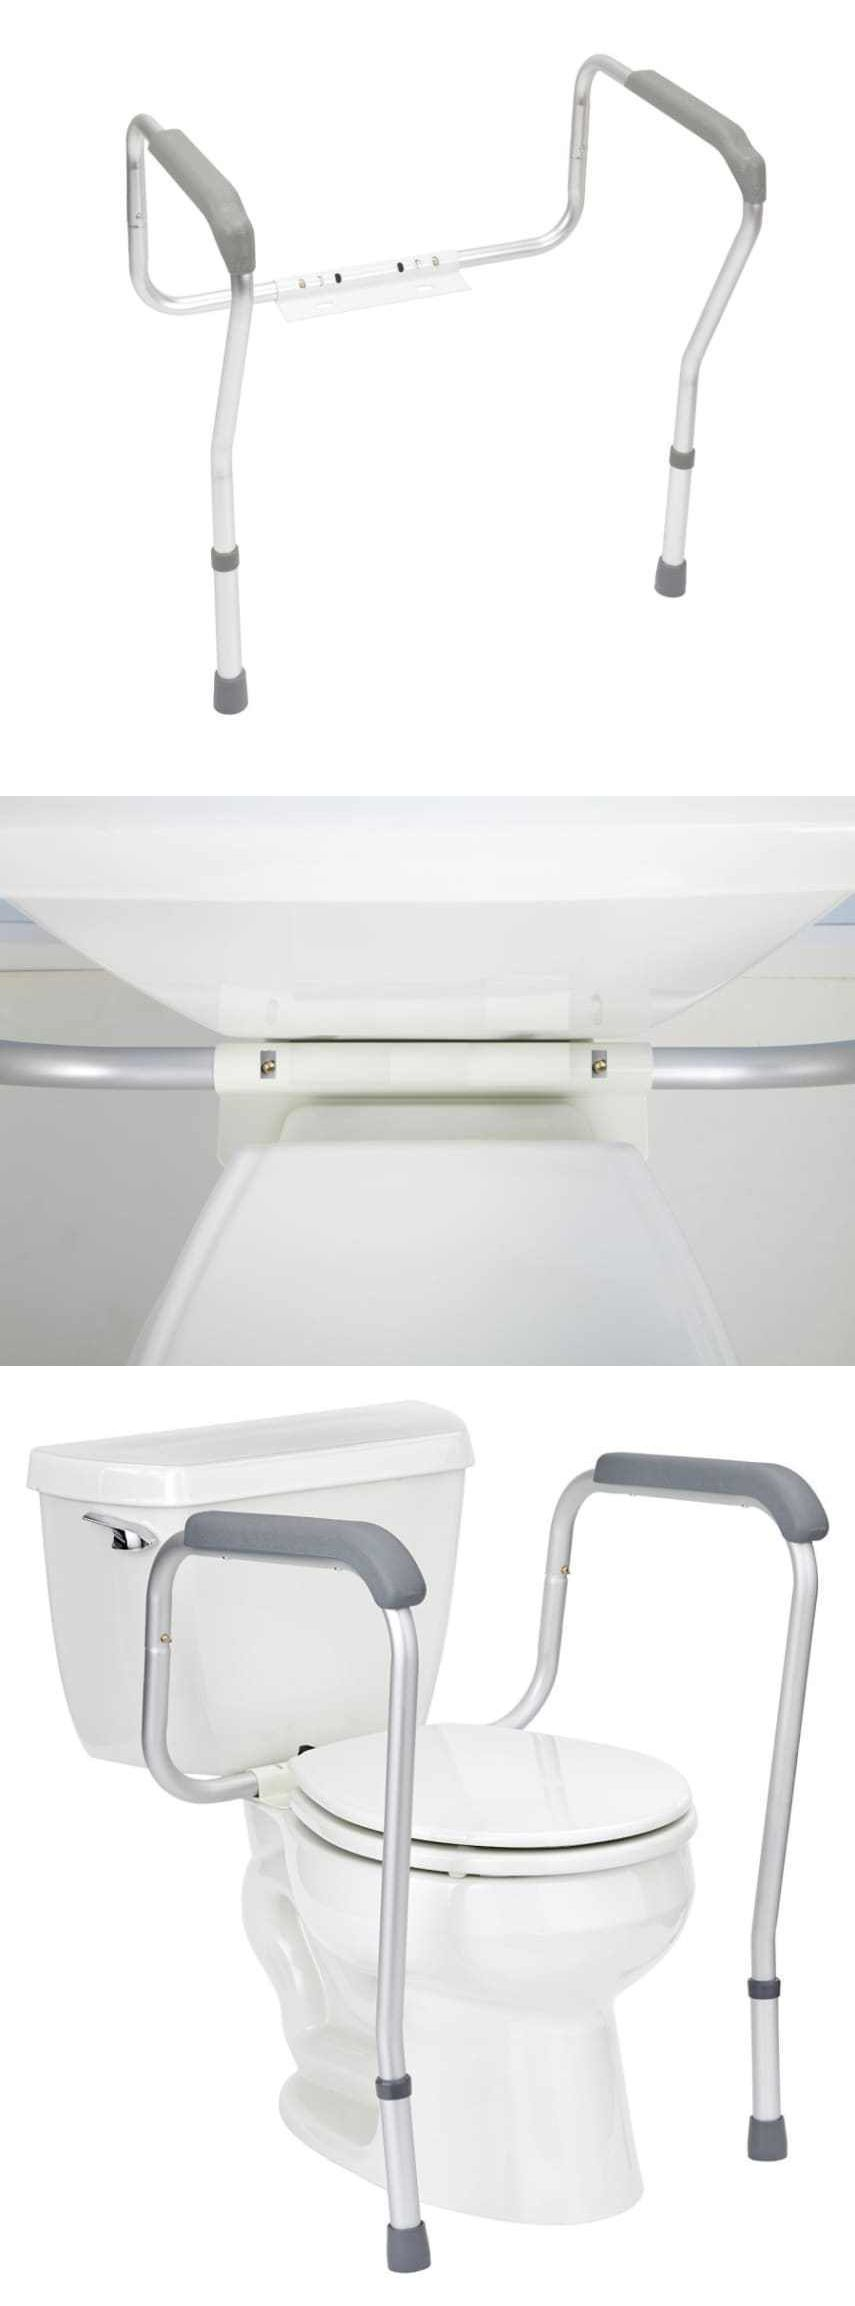 Other Accessibility Fixtures: Grab Bars Adjustable Toilet Safety ...